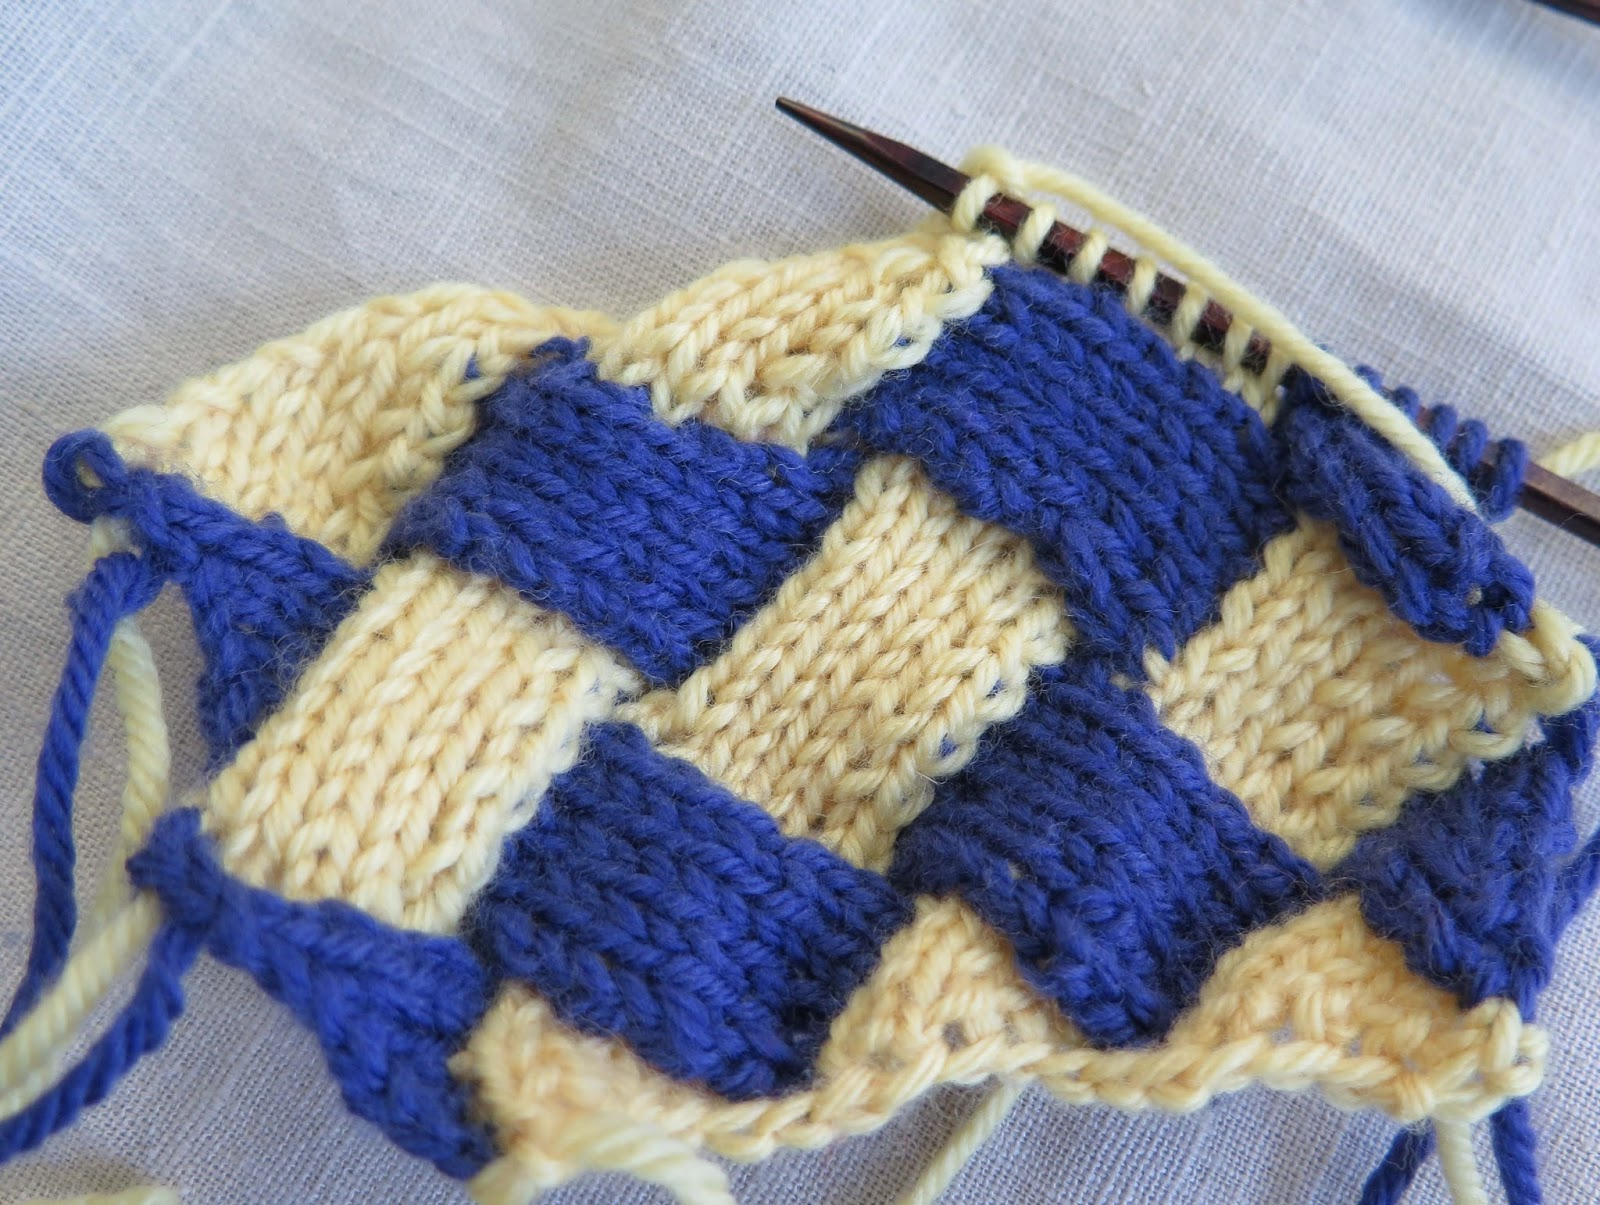 Picking Up Stitches Entrelac Knitting : Knit Pro: Entrelac   a step-by-step guide